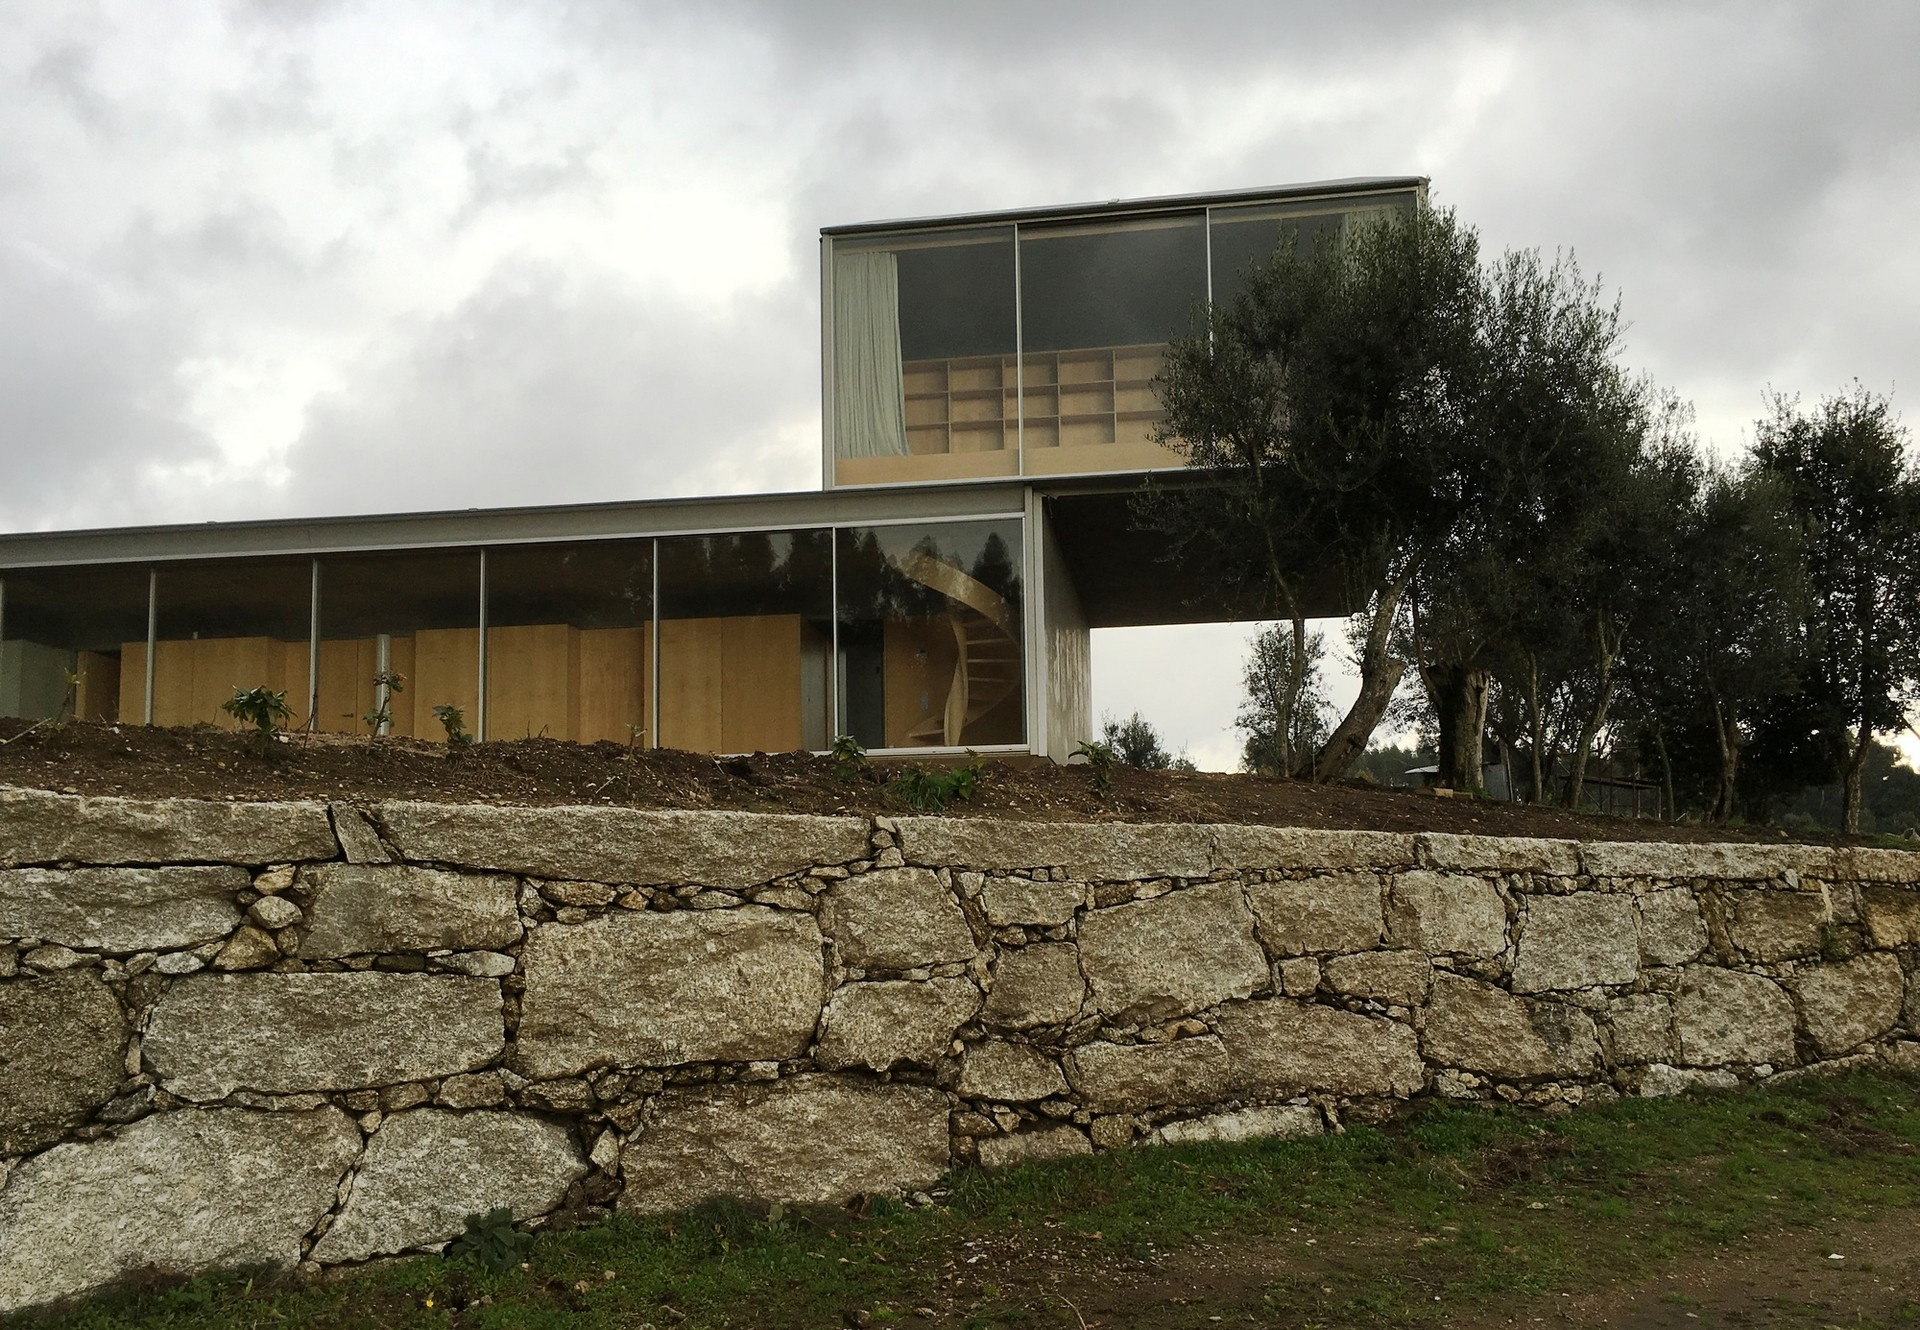 Best Architecture Projects 3 best architecture projects Best Architecture Projects: the House by Correia/Ragazzi Arquitectos Best Architecture Projects 3